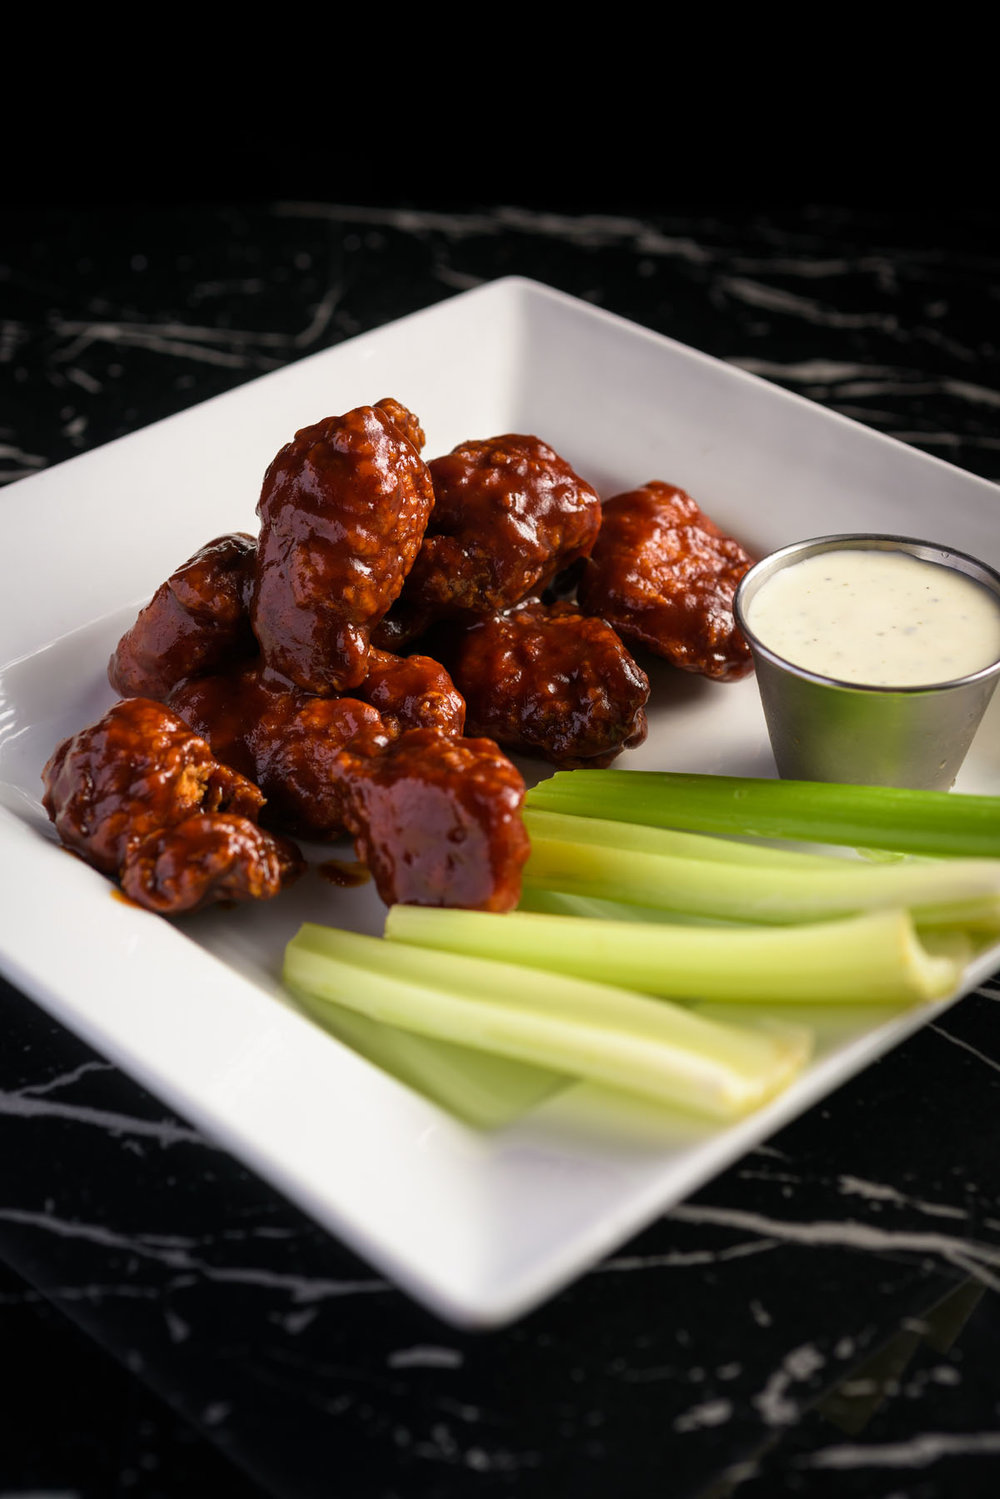 spicy chicken wings – Food Photos at Firehouse 37 restaurant in San Ramon - by Bay Area commercial photographer Chris Schmauch